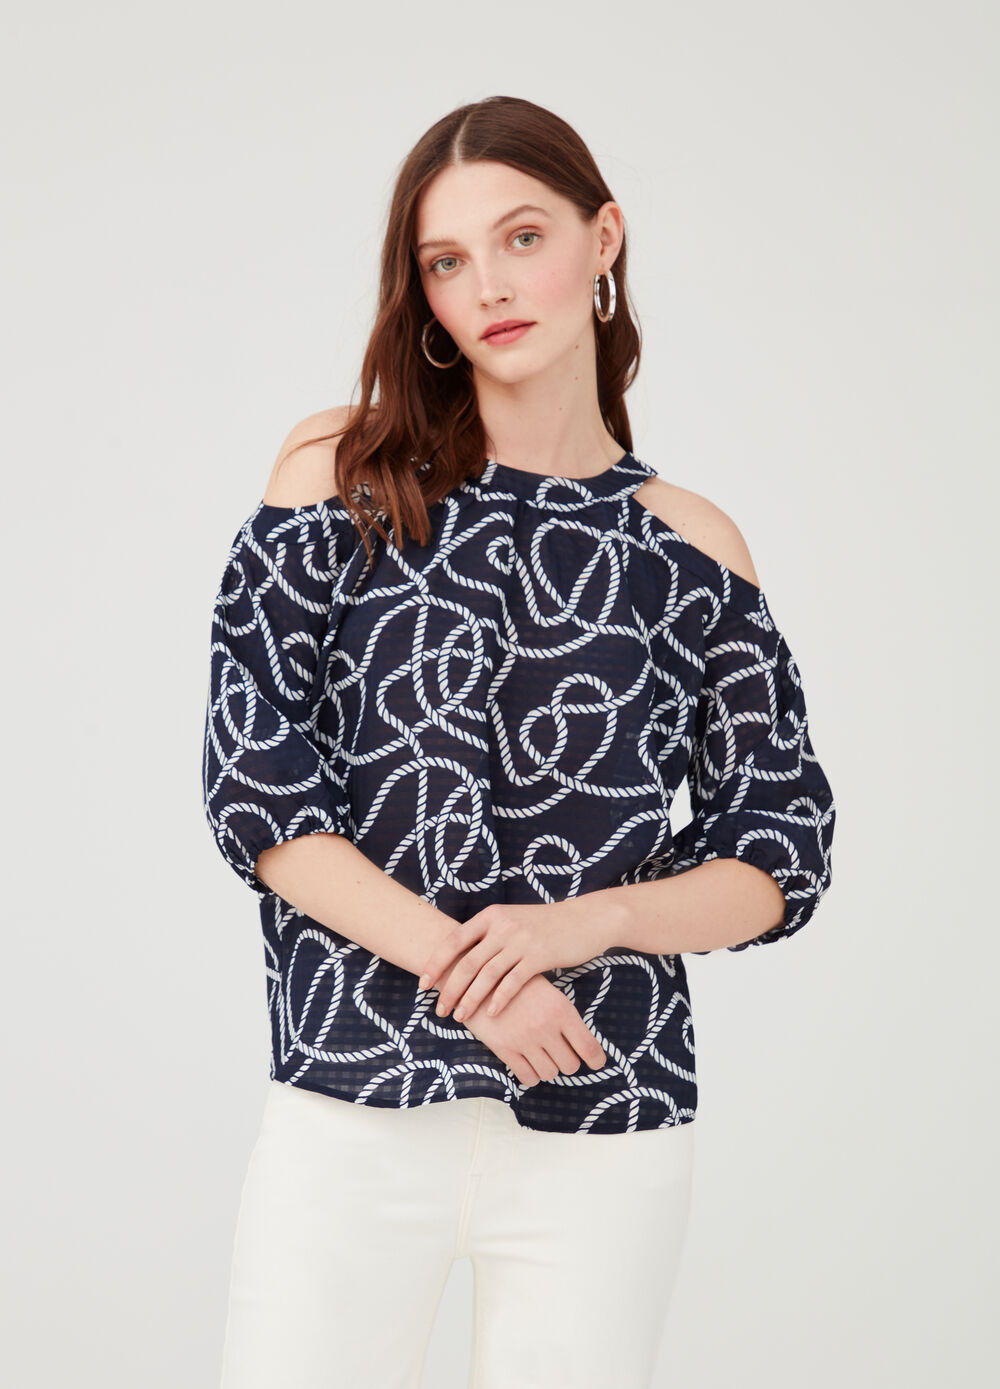 Blouse with opening on the shoulders and pattern